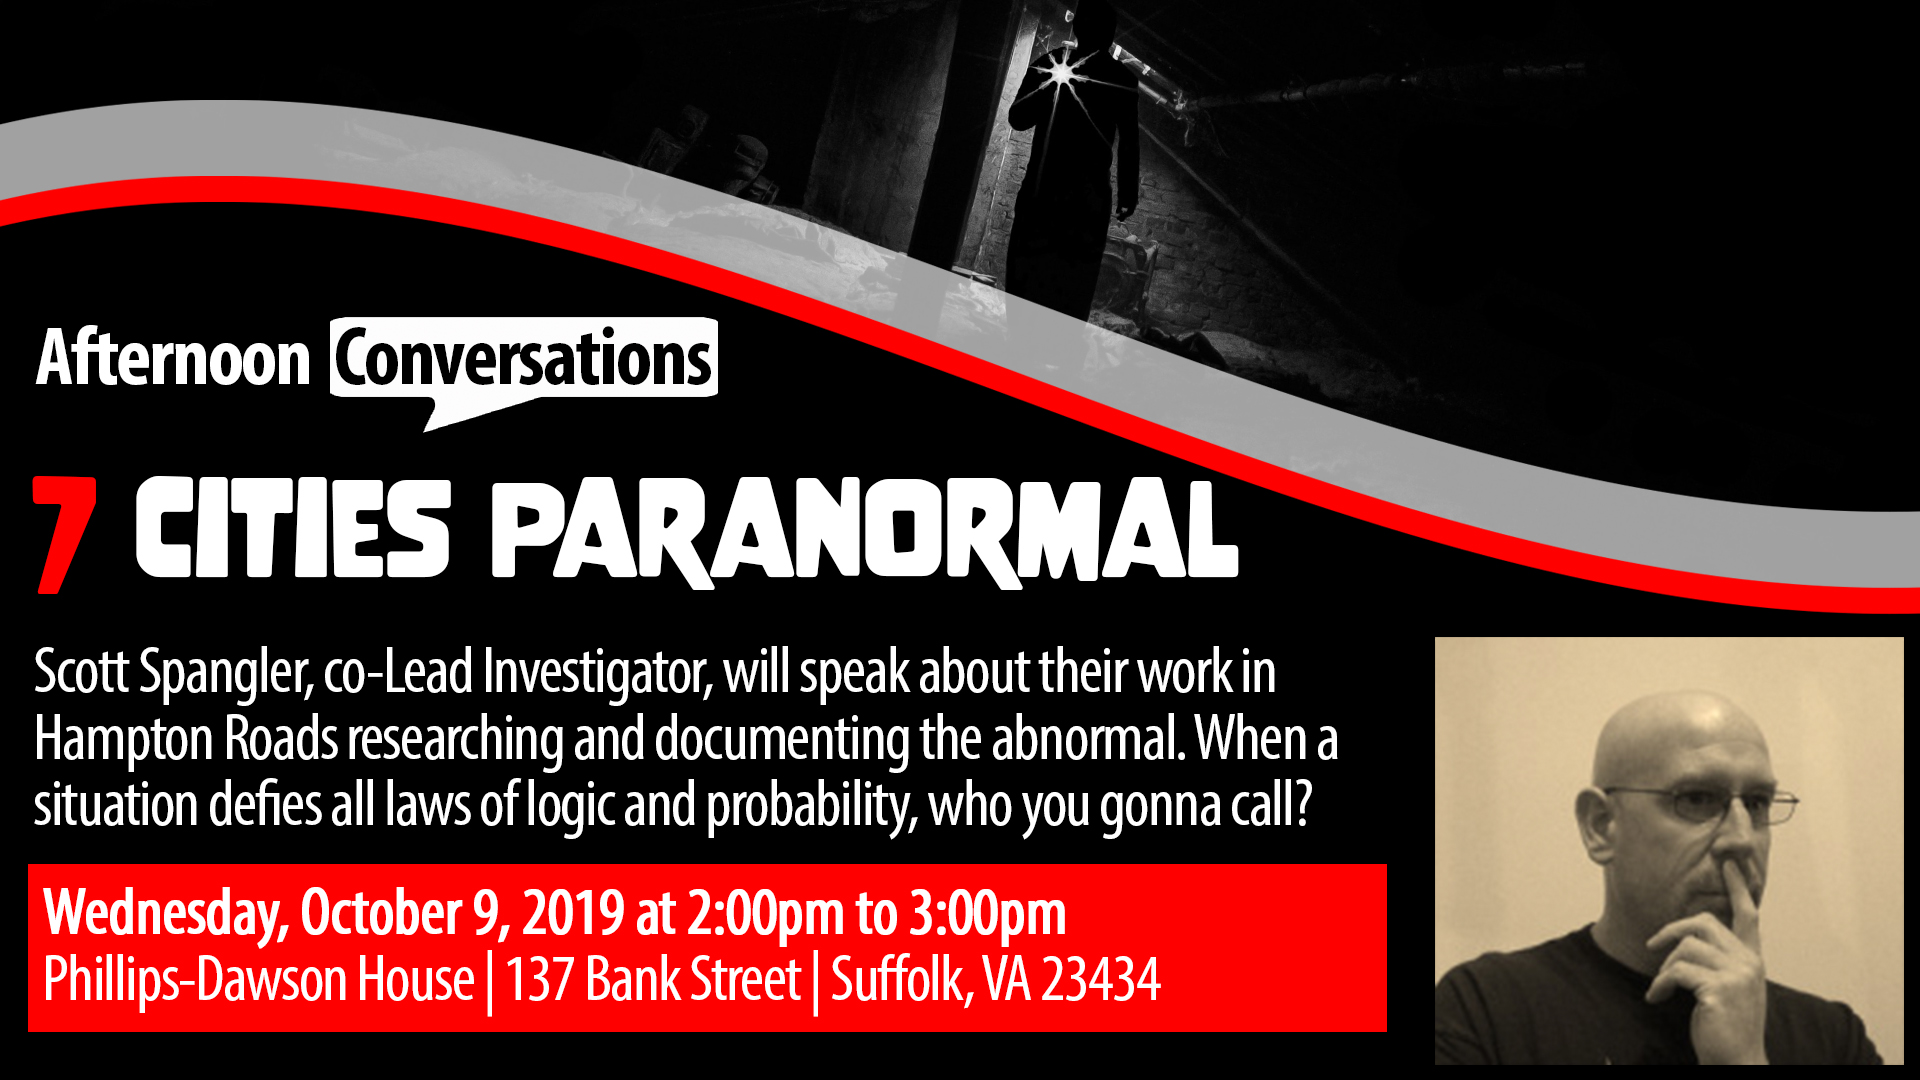 Afternoon Conversations:  7 Cities Paranormal